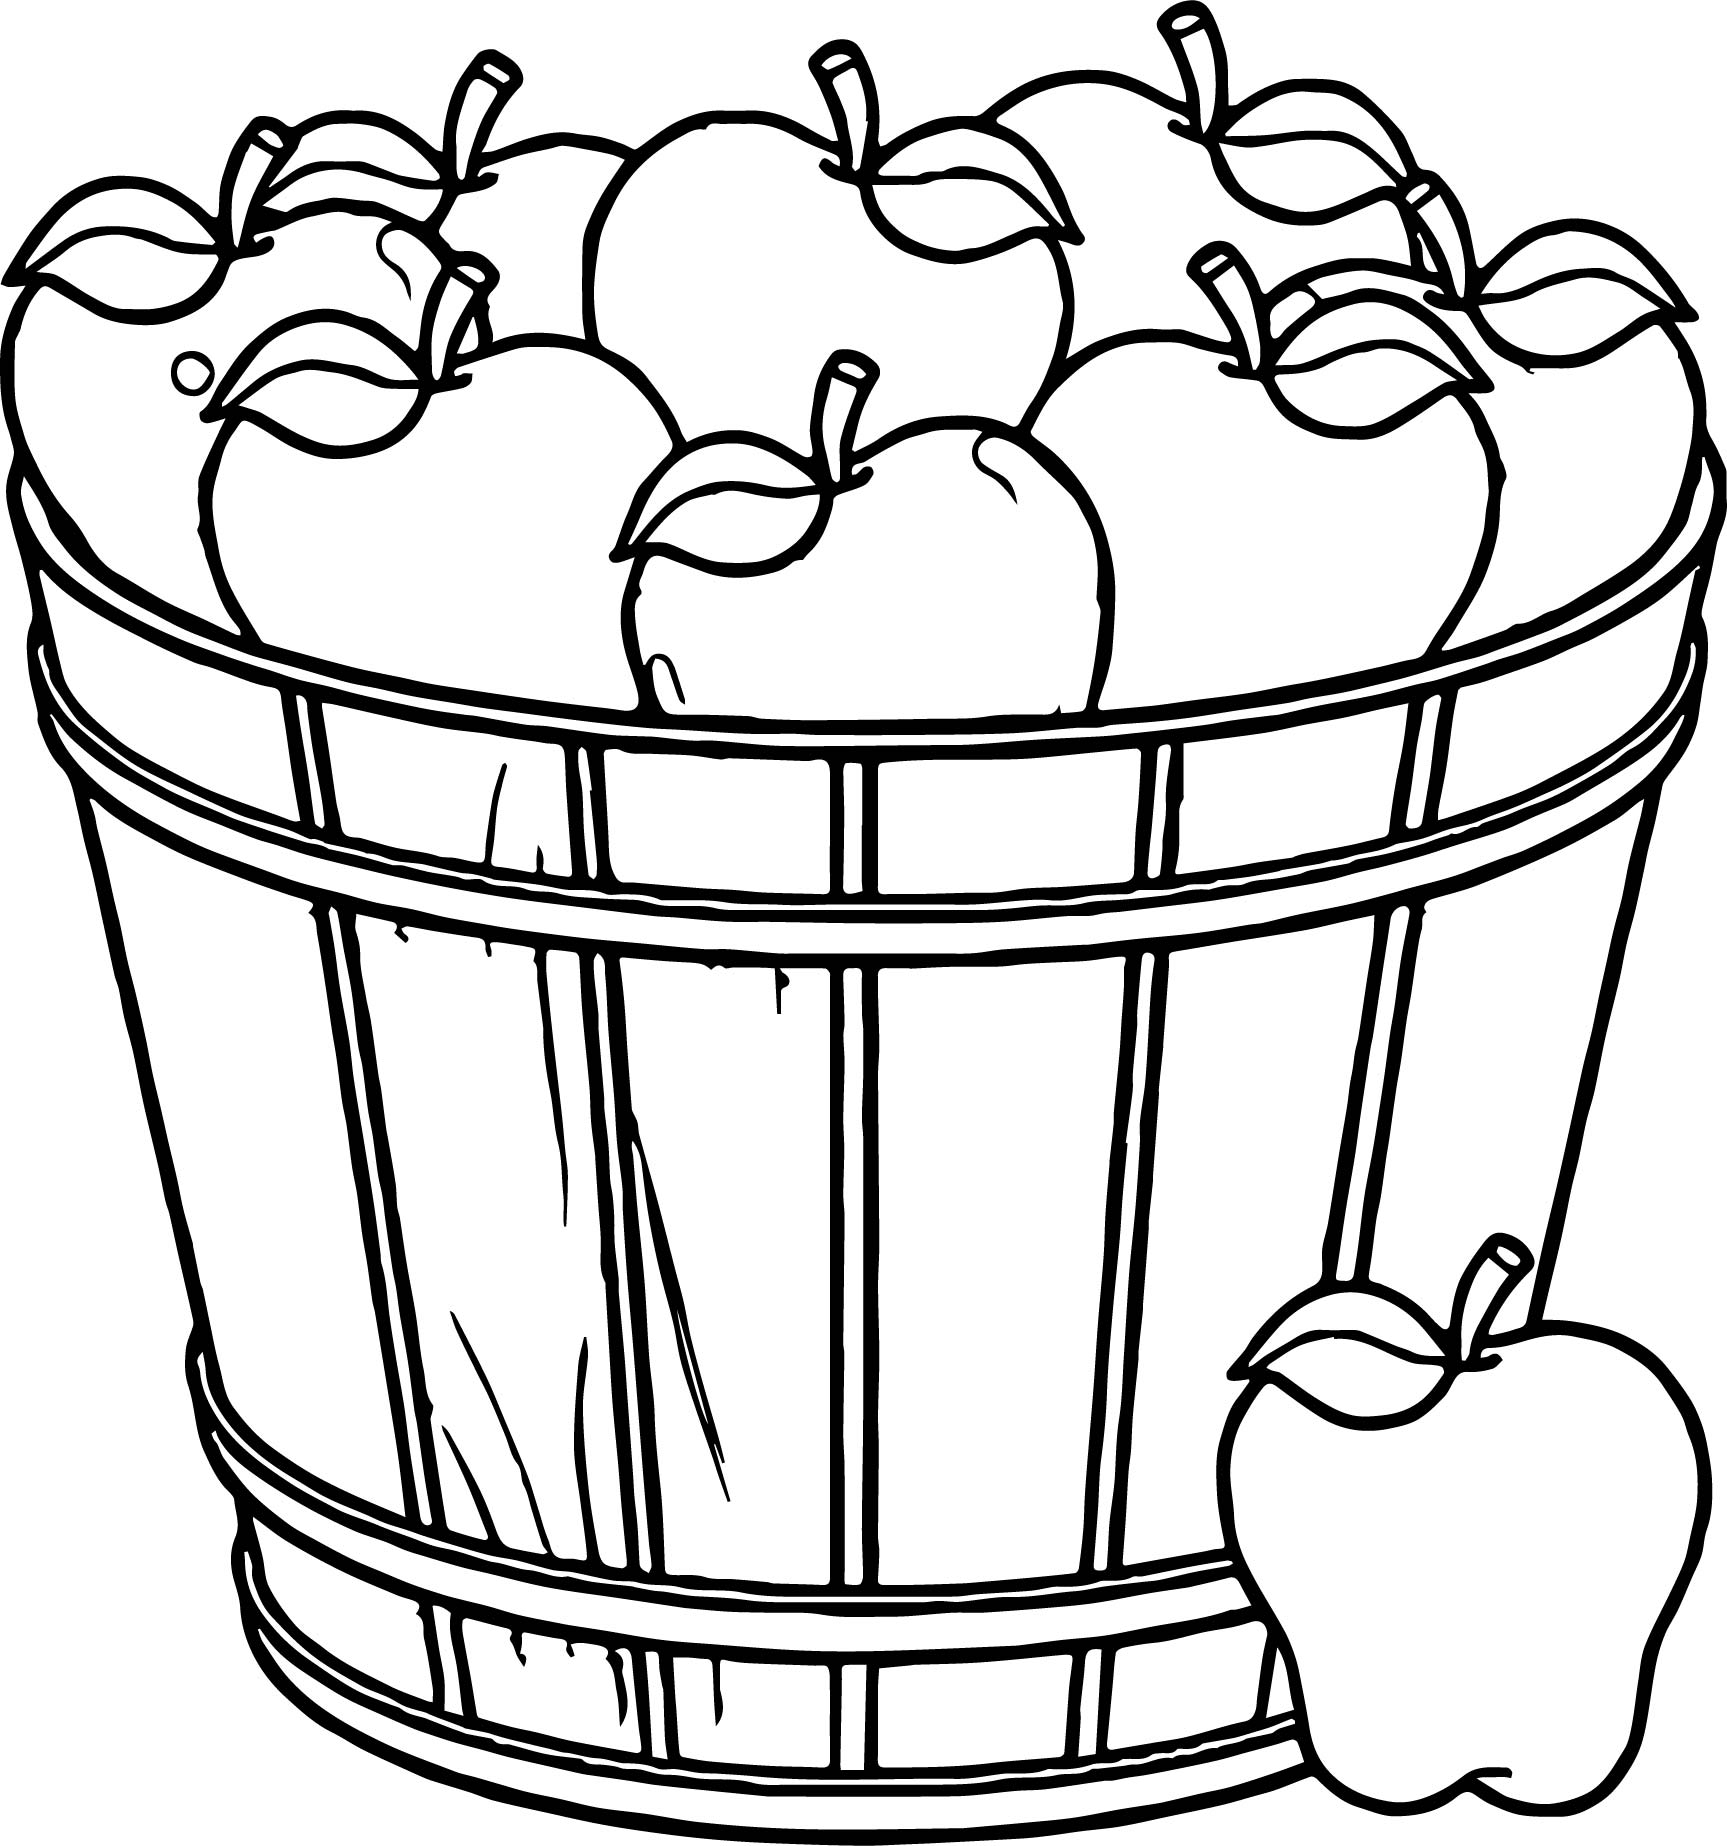 fruit bowl coloring page bowl of fruit coloring pages coloring pages to download bowl fruit coloring page